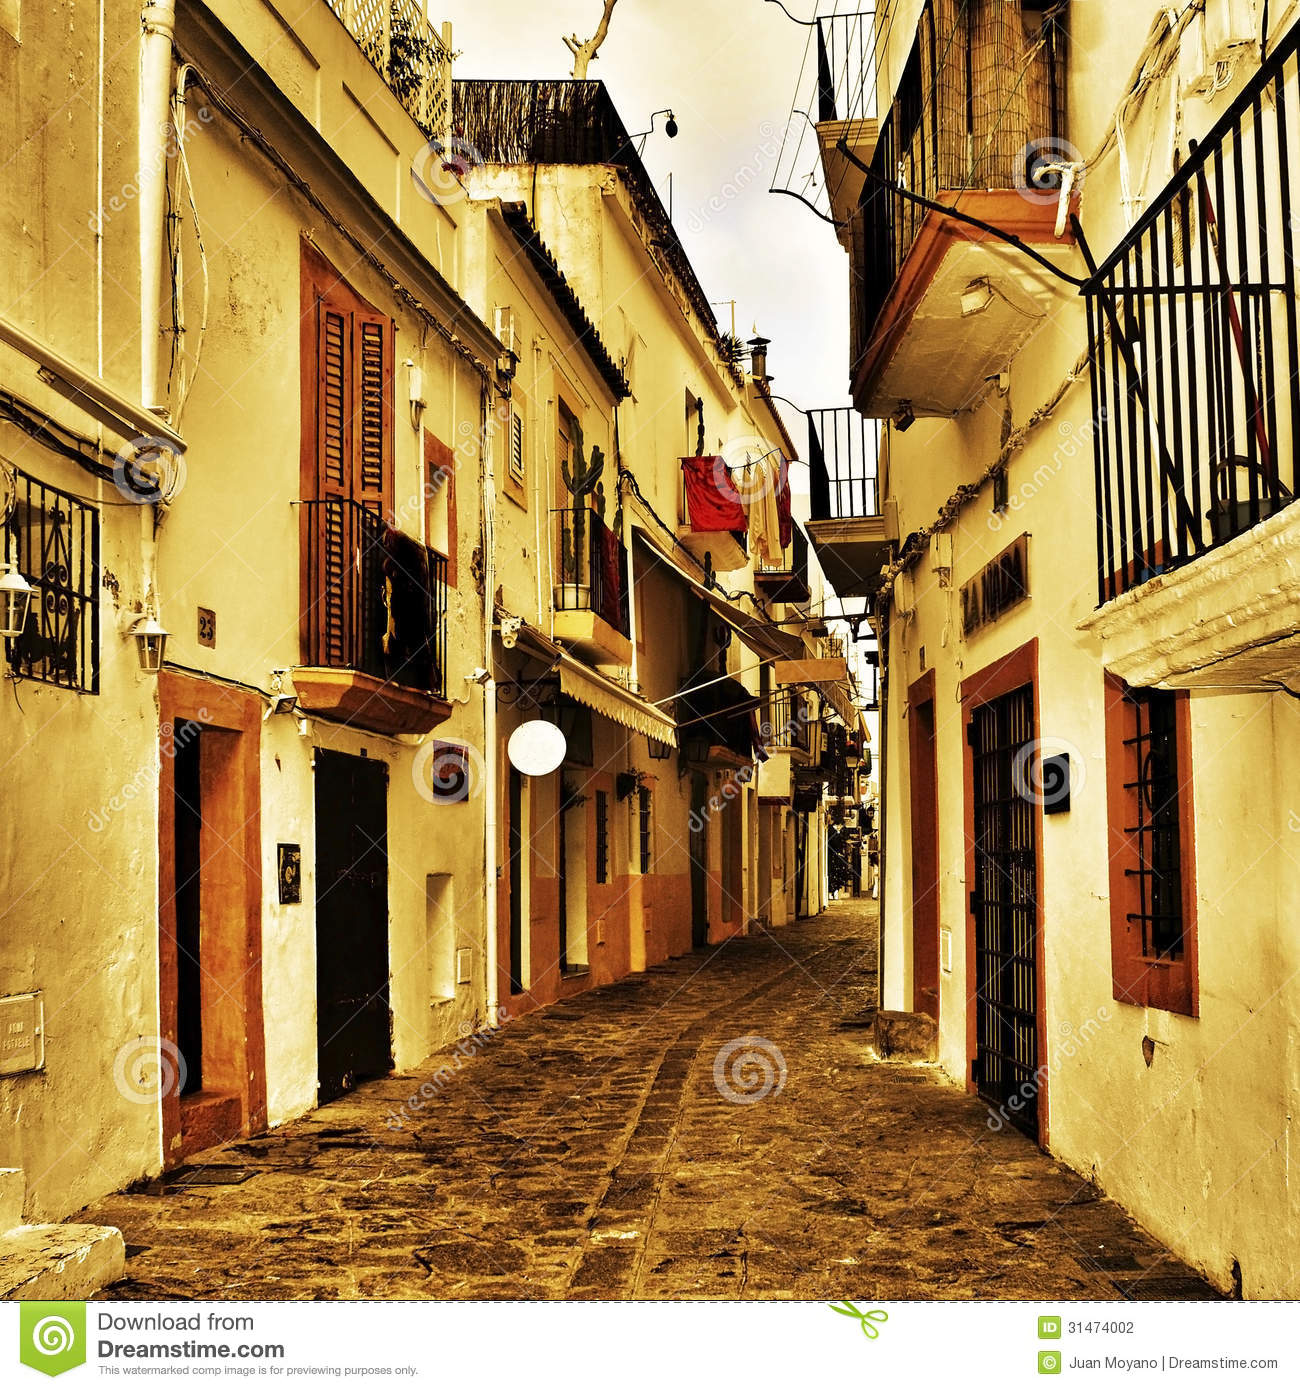 Street Of Dalt Vila, The Old Town Of Ibiza Town, In Balearic Isl.